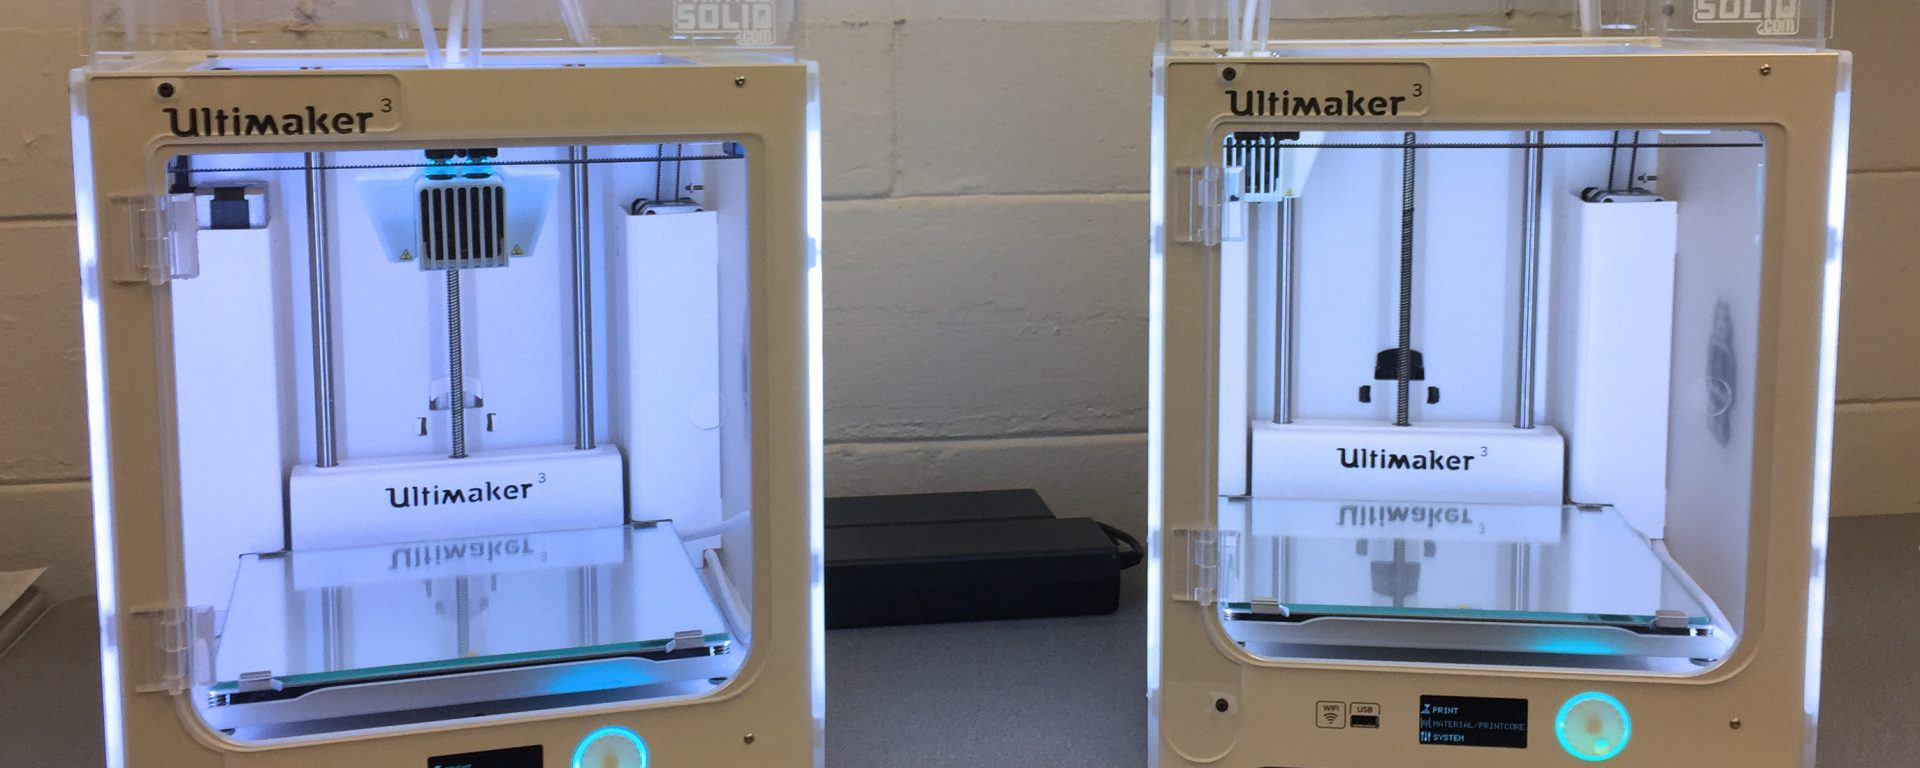 Two Ultimaker 3 - 3D printers